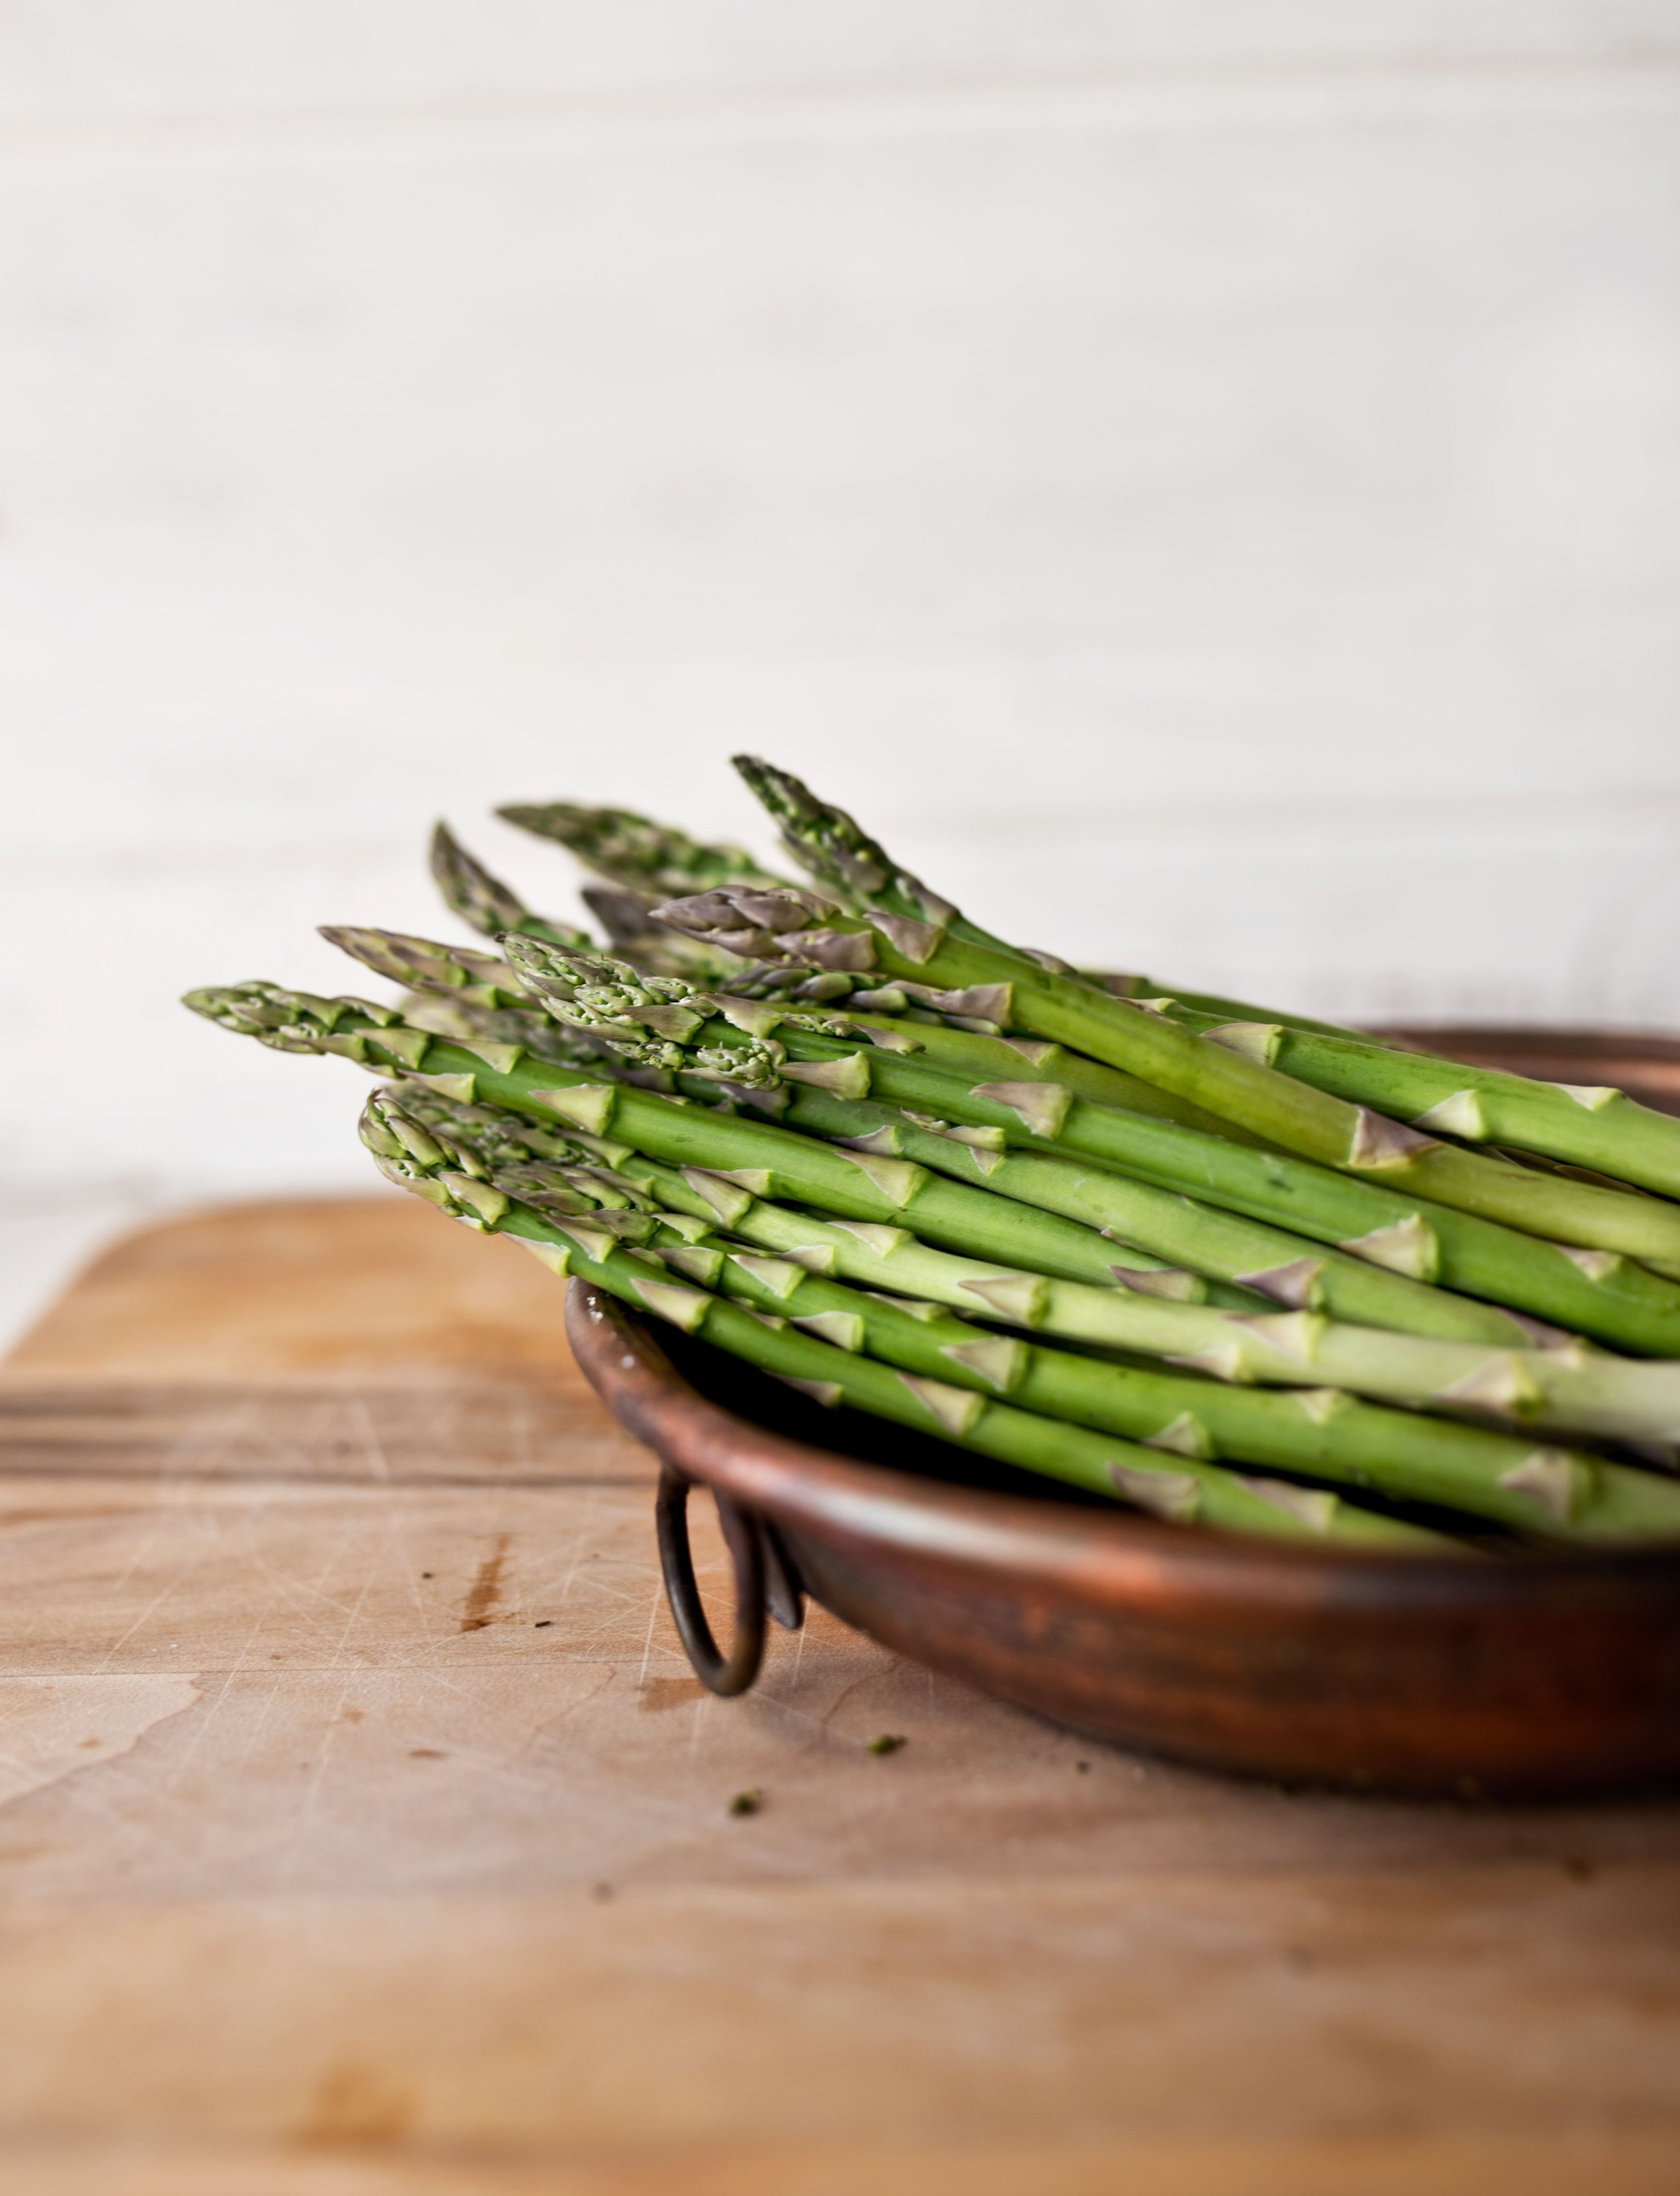 Asparagus is a natural diuretic and helps flush toxins. -